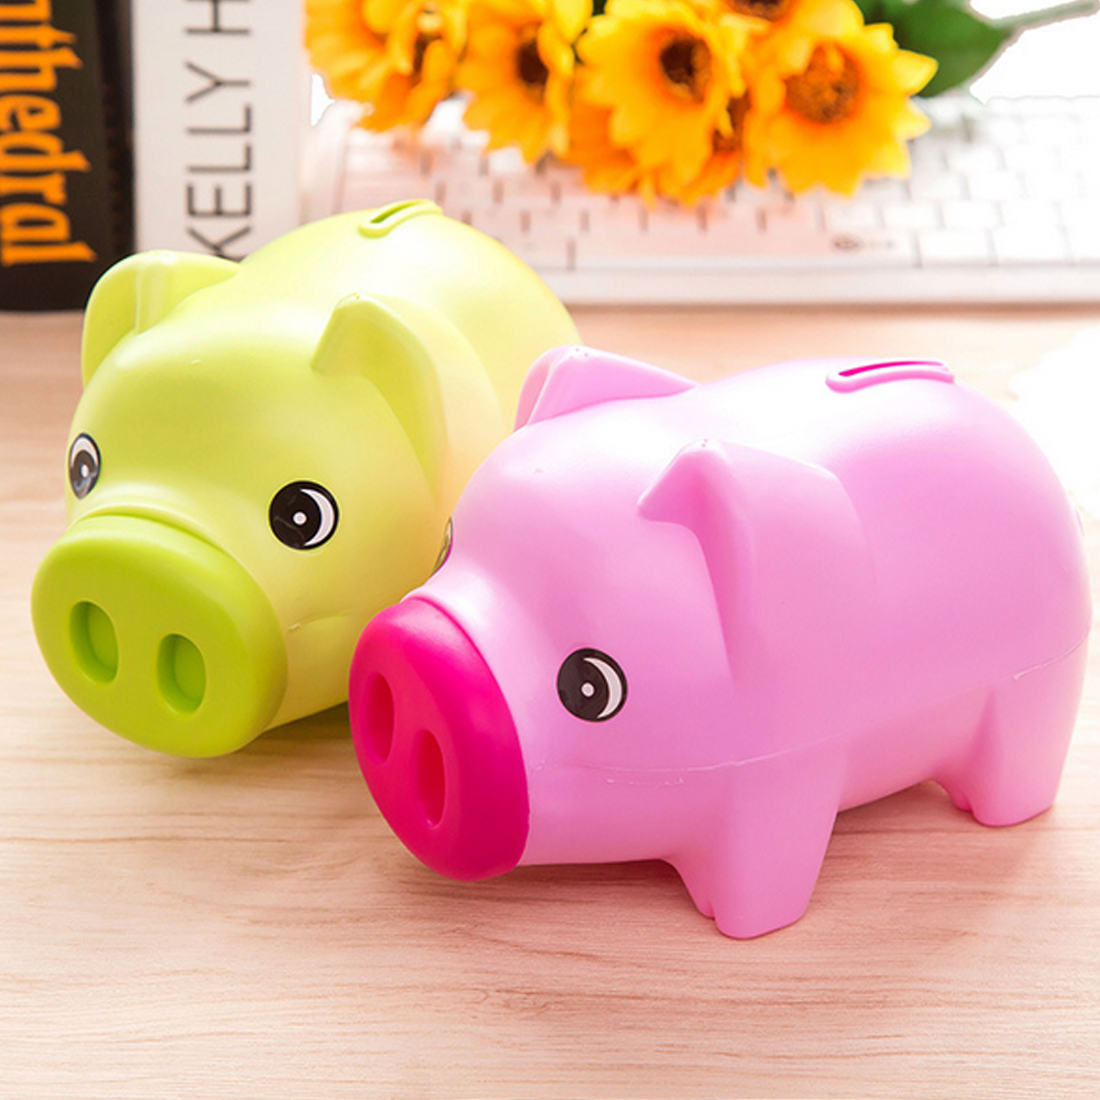 Good Quality Portable Cute Plastic Piggy Bank Saving Cash Coin Money Box Children Toy Kids Gifts Home Collection 3 Colors